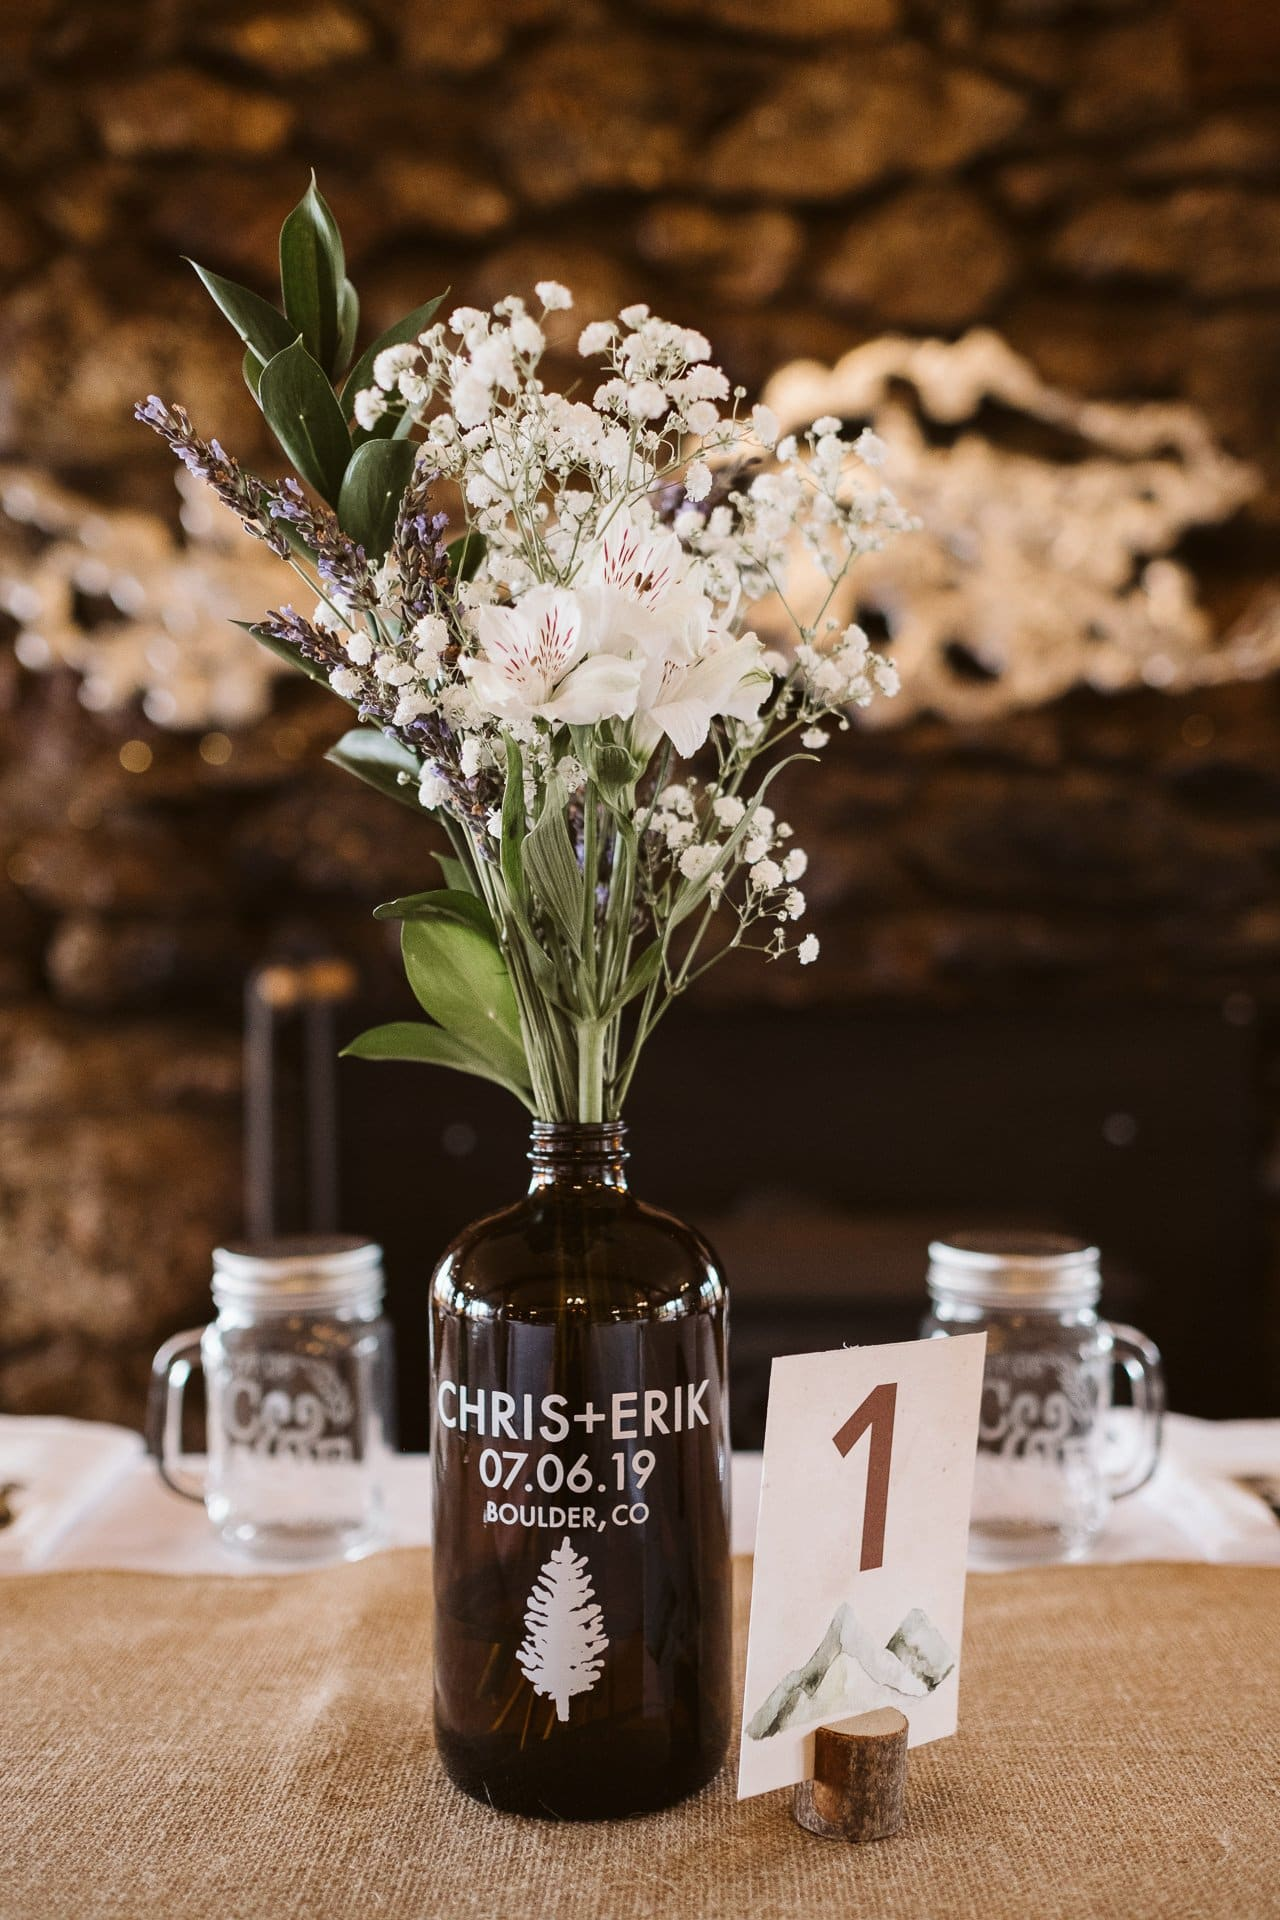 Rustic wood wedding venue at Colorado Mountain Ranch in Boulder, custom printed growlers as centerpieces